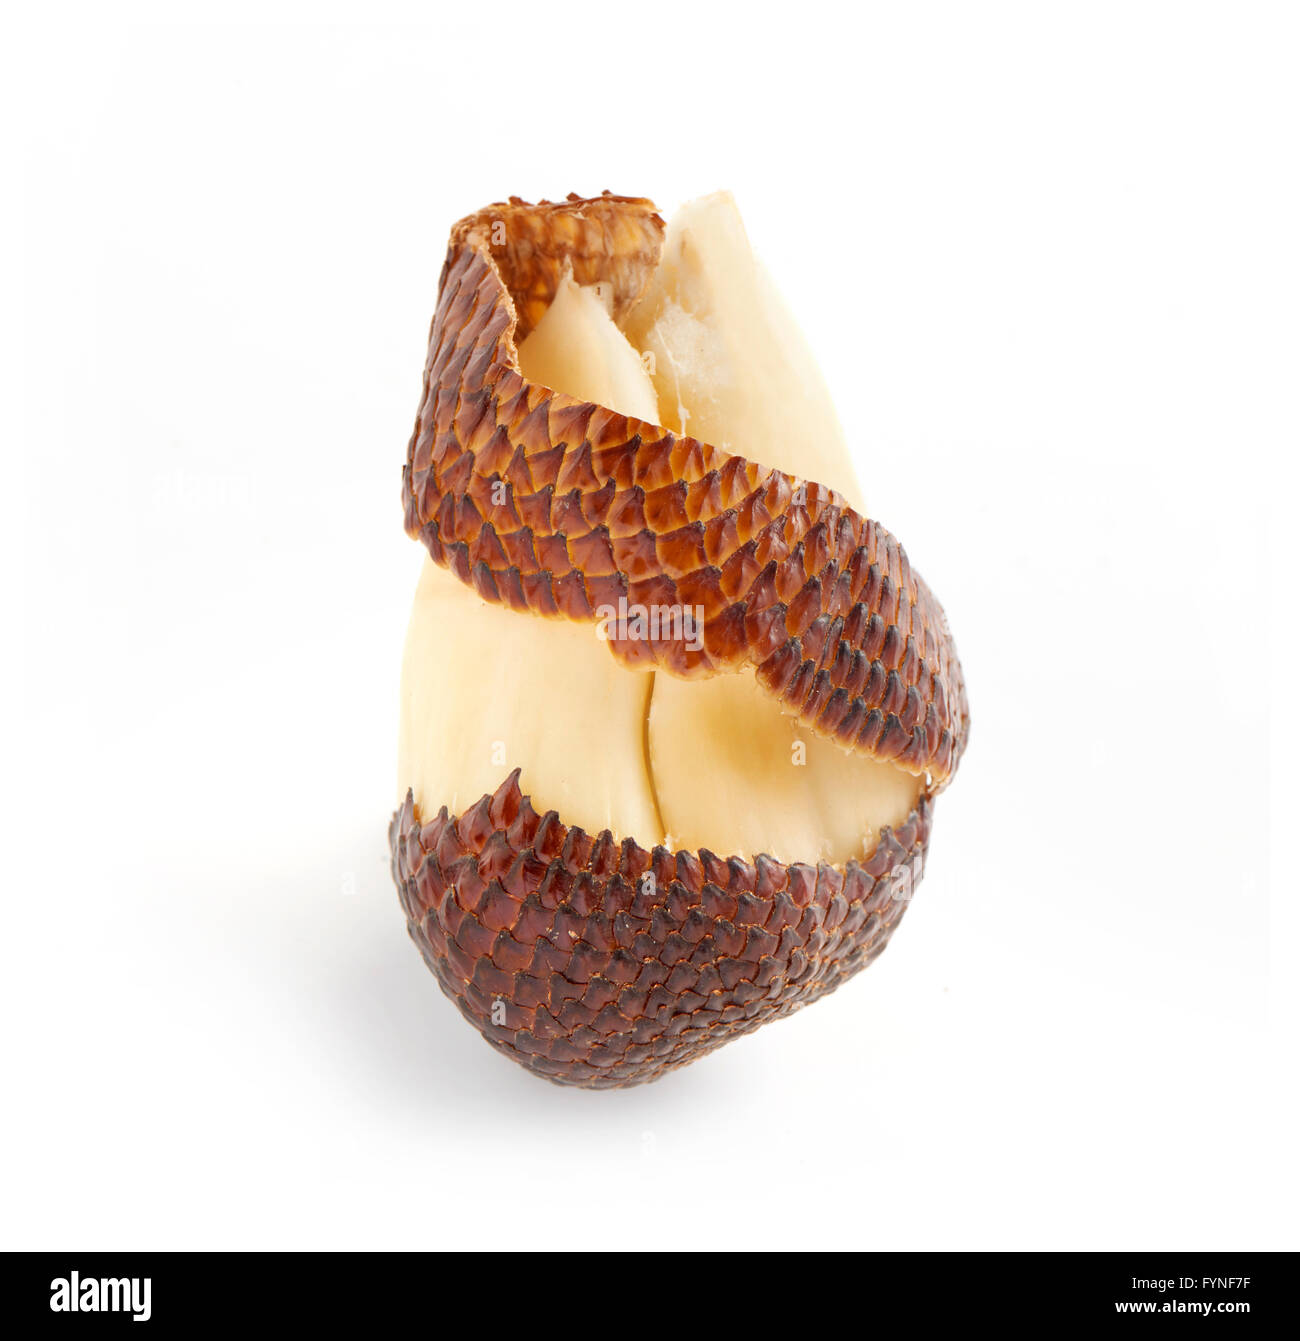 Close Up Still Life of Partially Peeled Exotic Salak Palm Fruit with Brown Scaly Skin on White Background with Copy - Stock Image